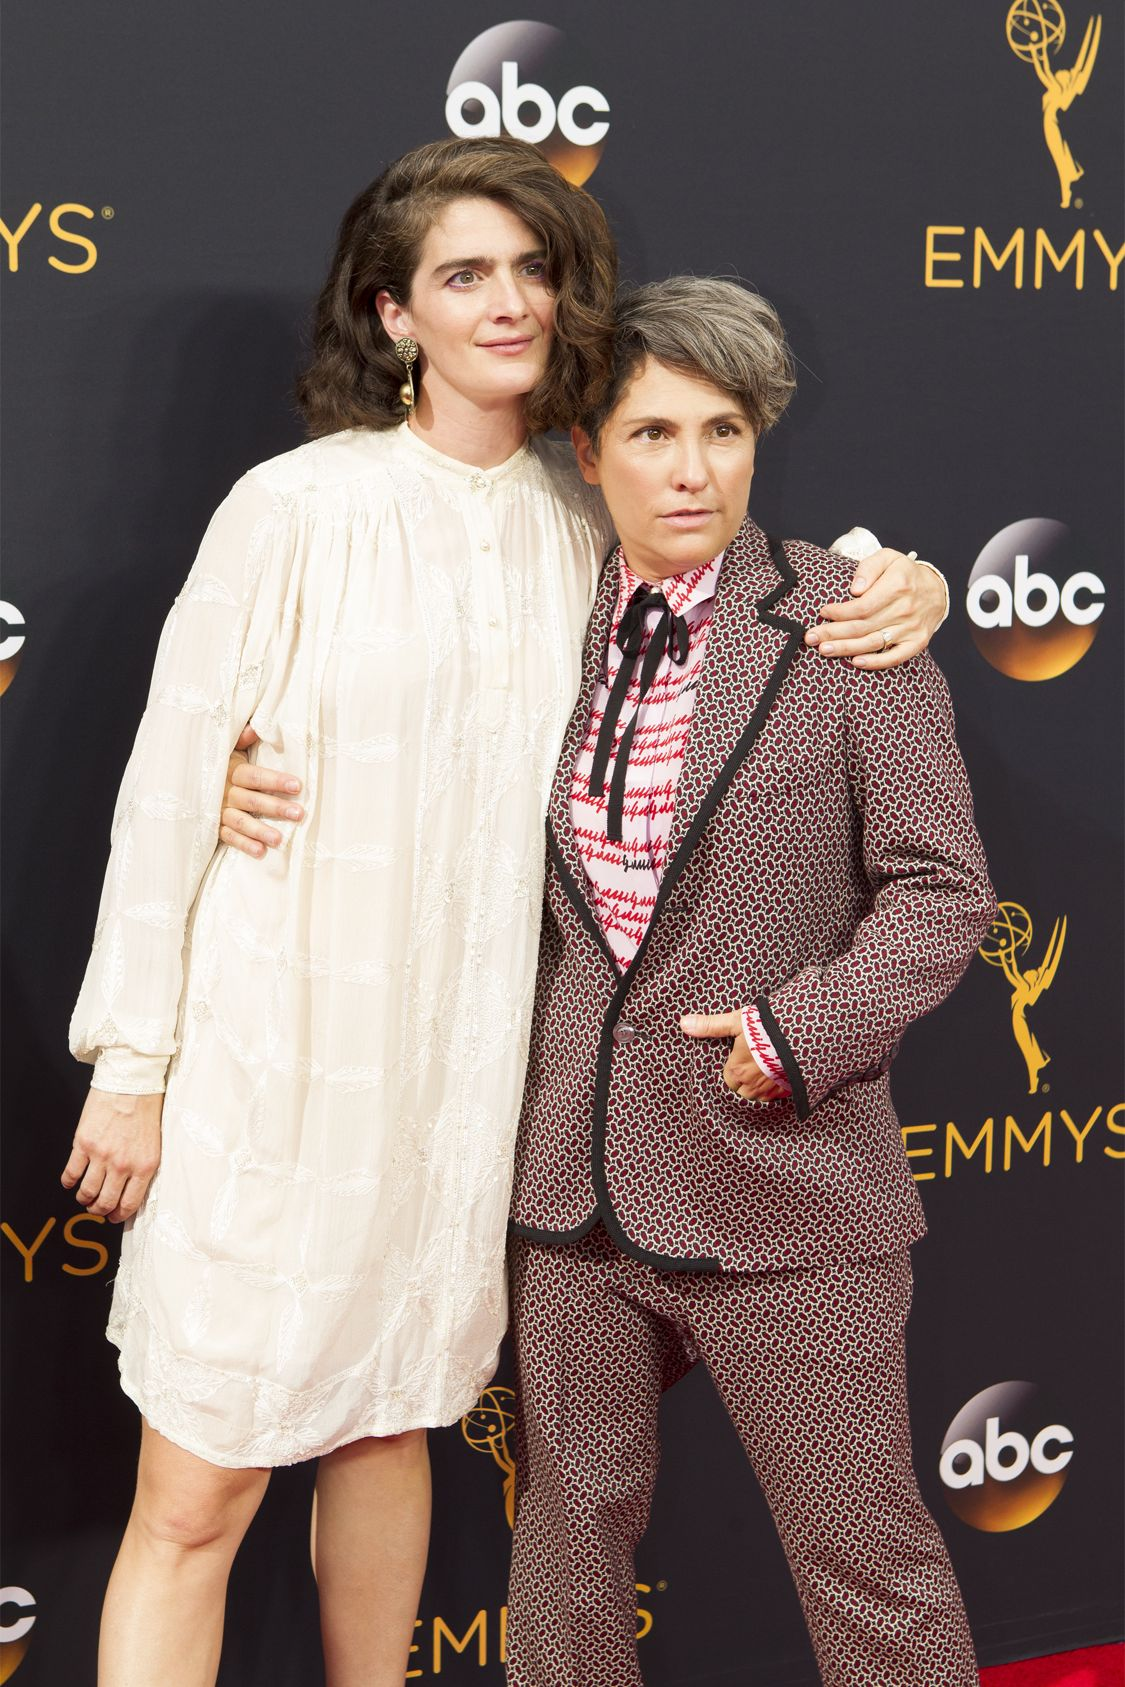 """THE 68TH EMMY(r) AWARDS - """"The 68th Emmy Awards"""" broadcasts live from The Microsoft Theater in Los Angeles, Sunday, September 18 (7:00-11:00 p.m. EDT/4:00-8:00 p.m. PDT), on ABC and is hosted by Jimmy Kimmel. (ABC/Rick Rowell) GABBY HOFFMAN, JILL SOLOWAY"""